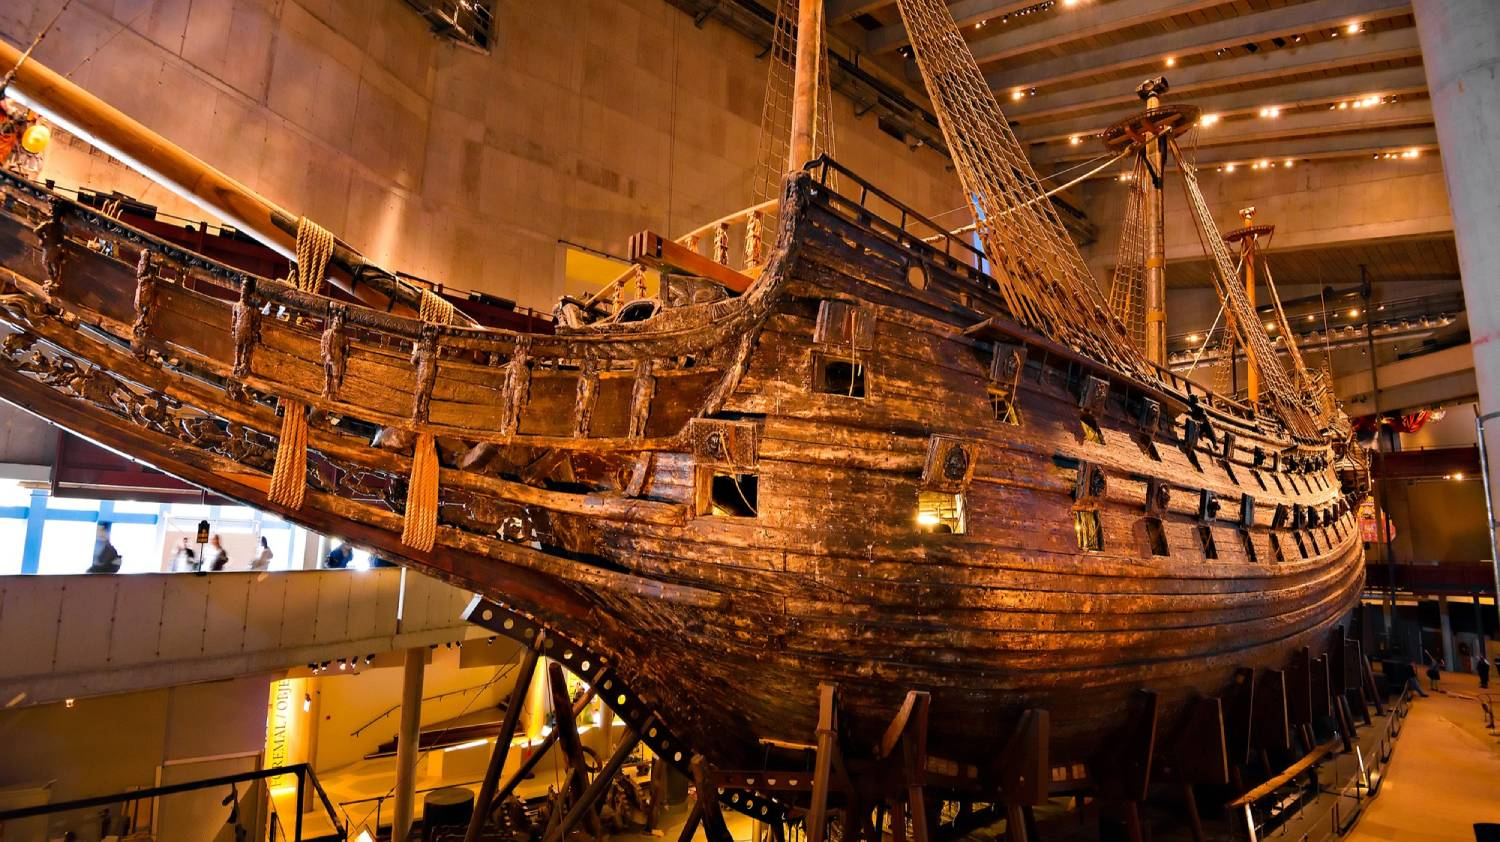 Vasa Museum - Things To Do In Stockholm